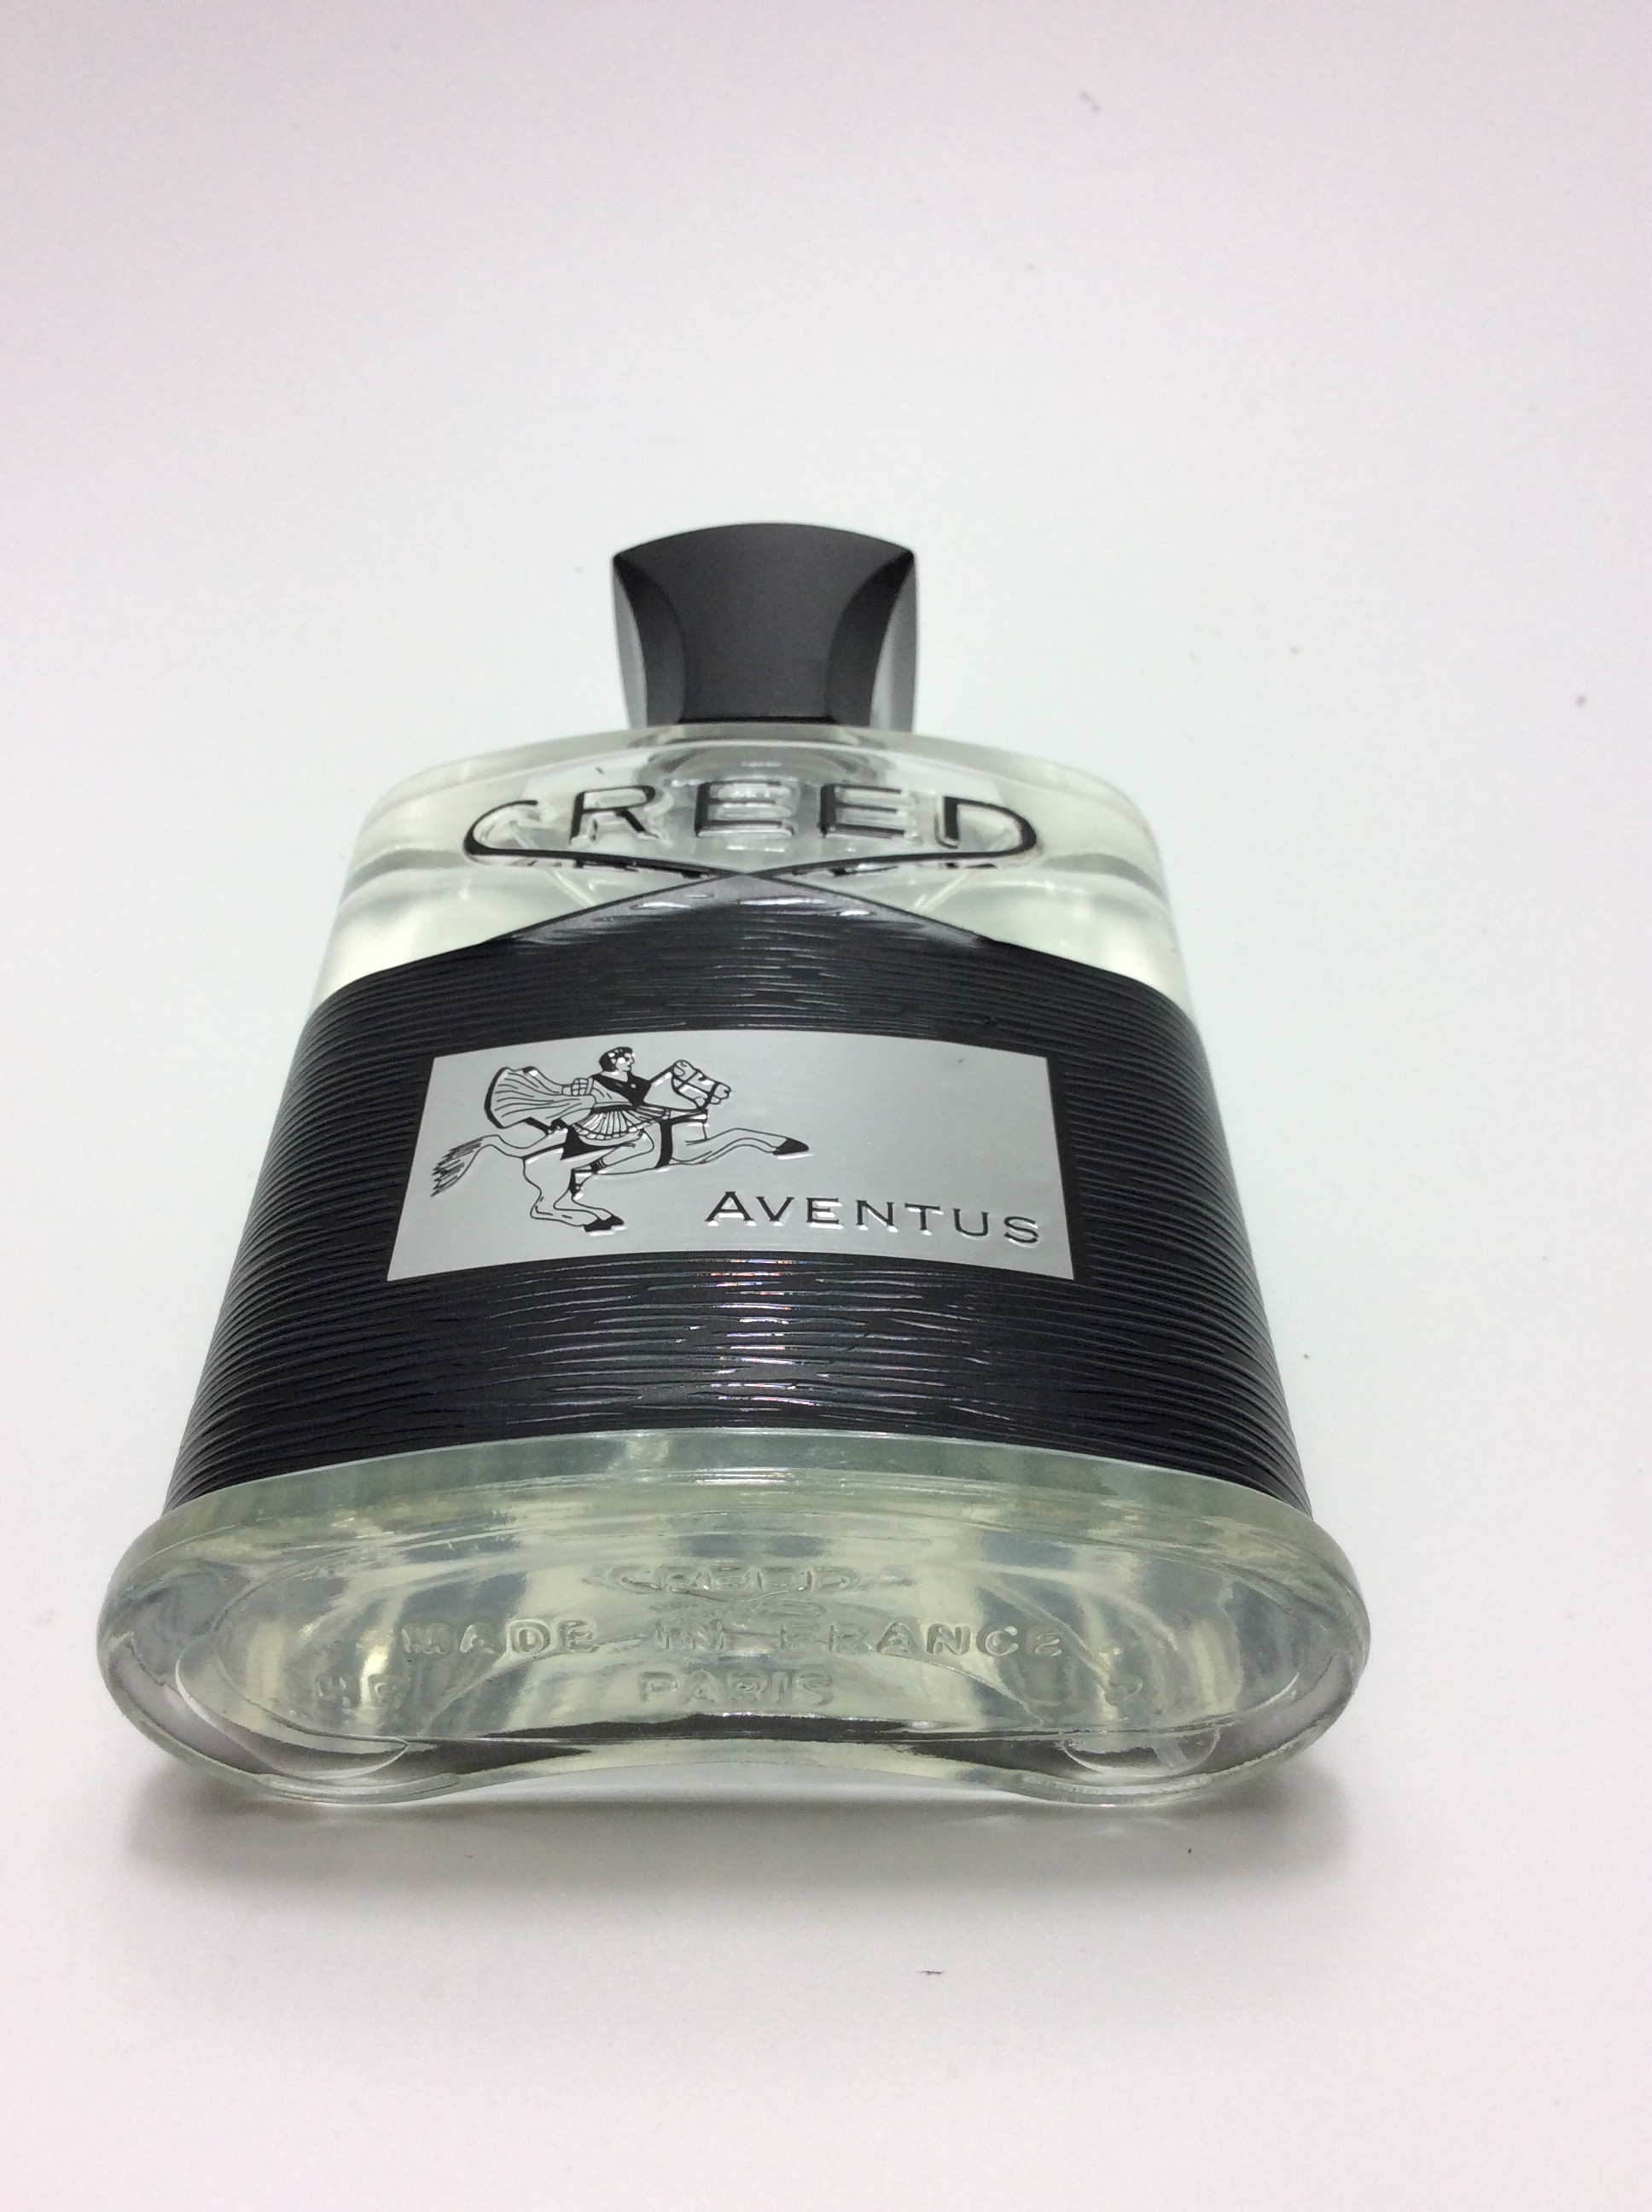 New Creed aventus Incense perfume for men cologne 120ml with long lasting time smell good quality fragrance free shipping